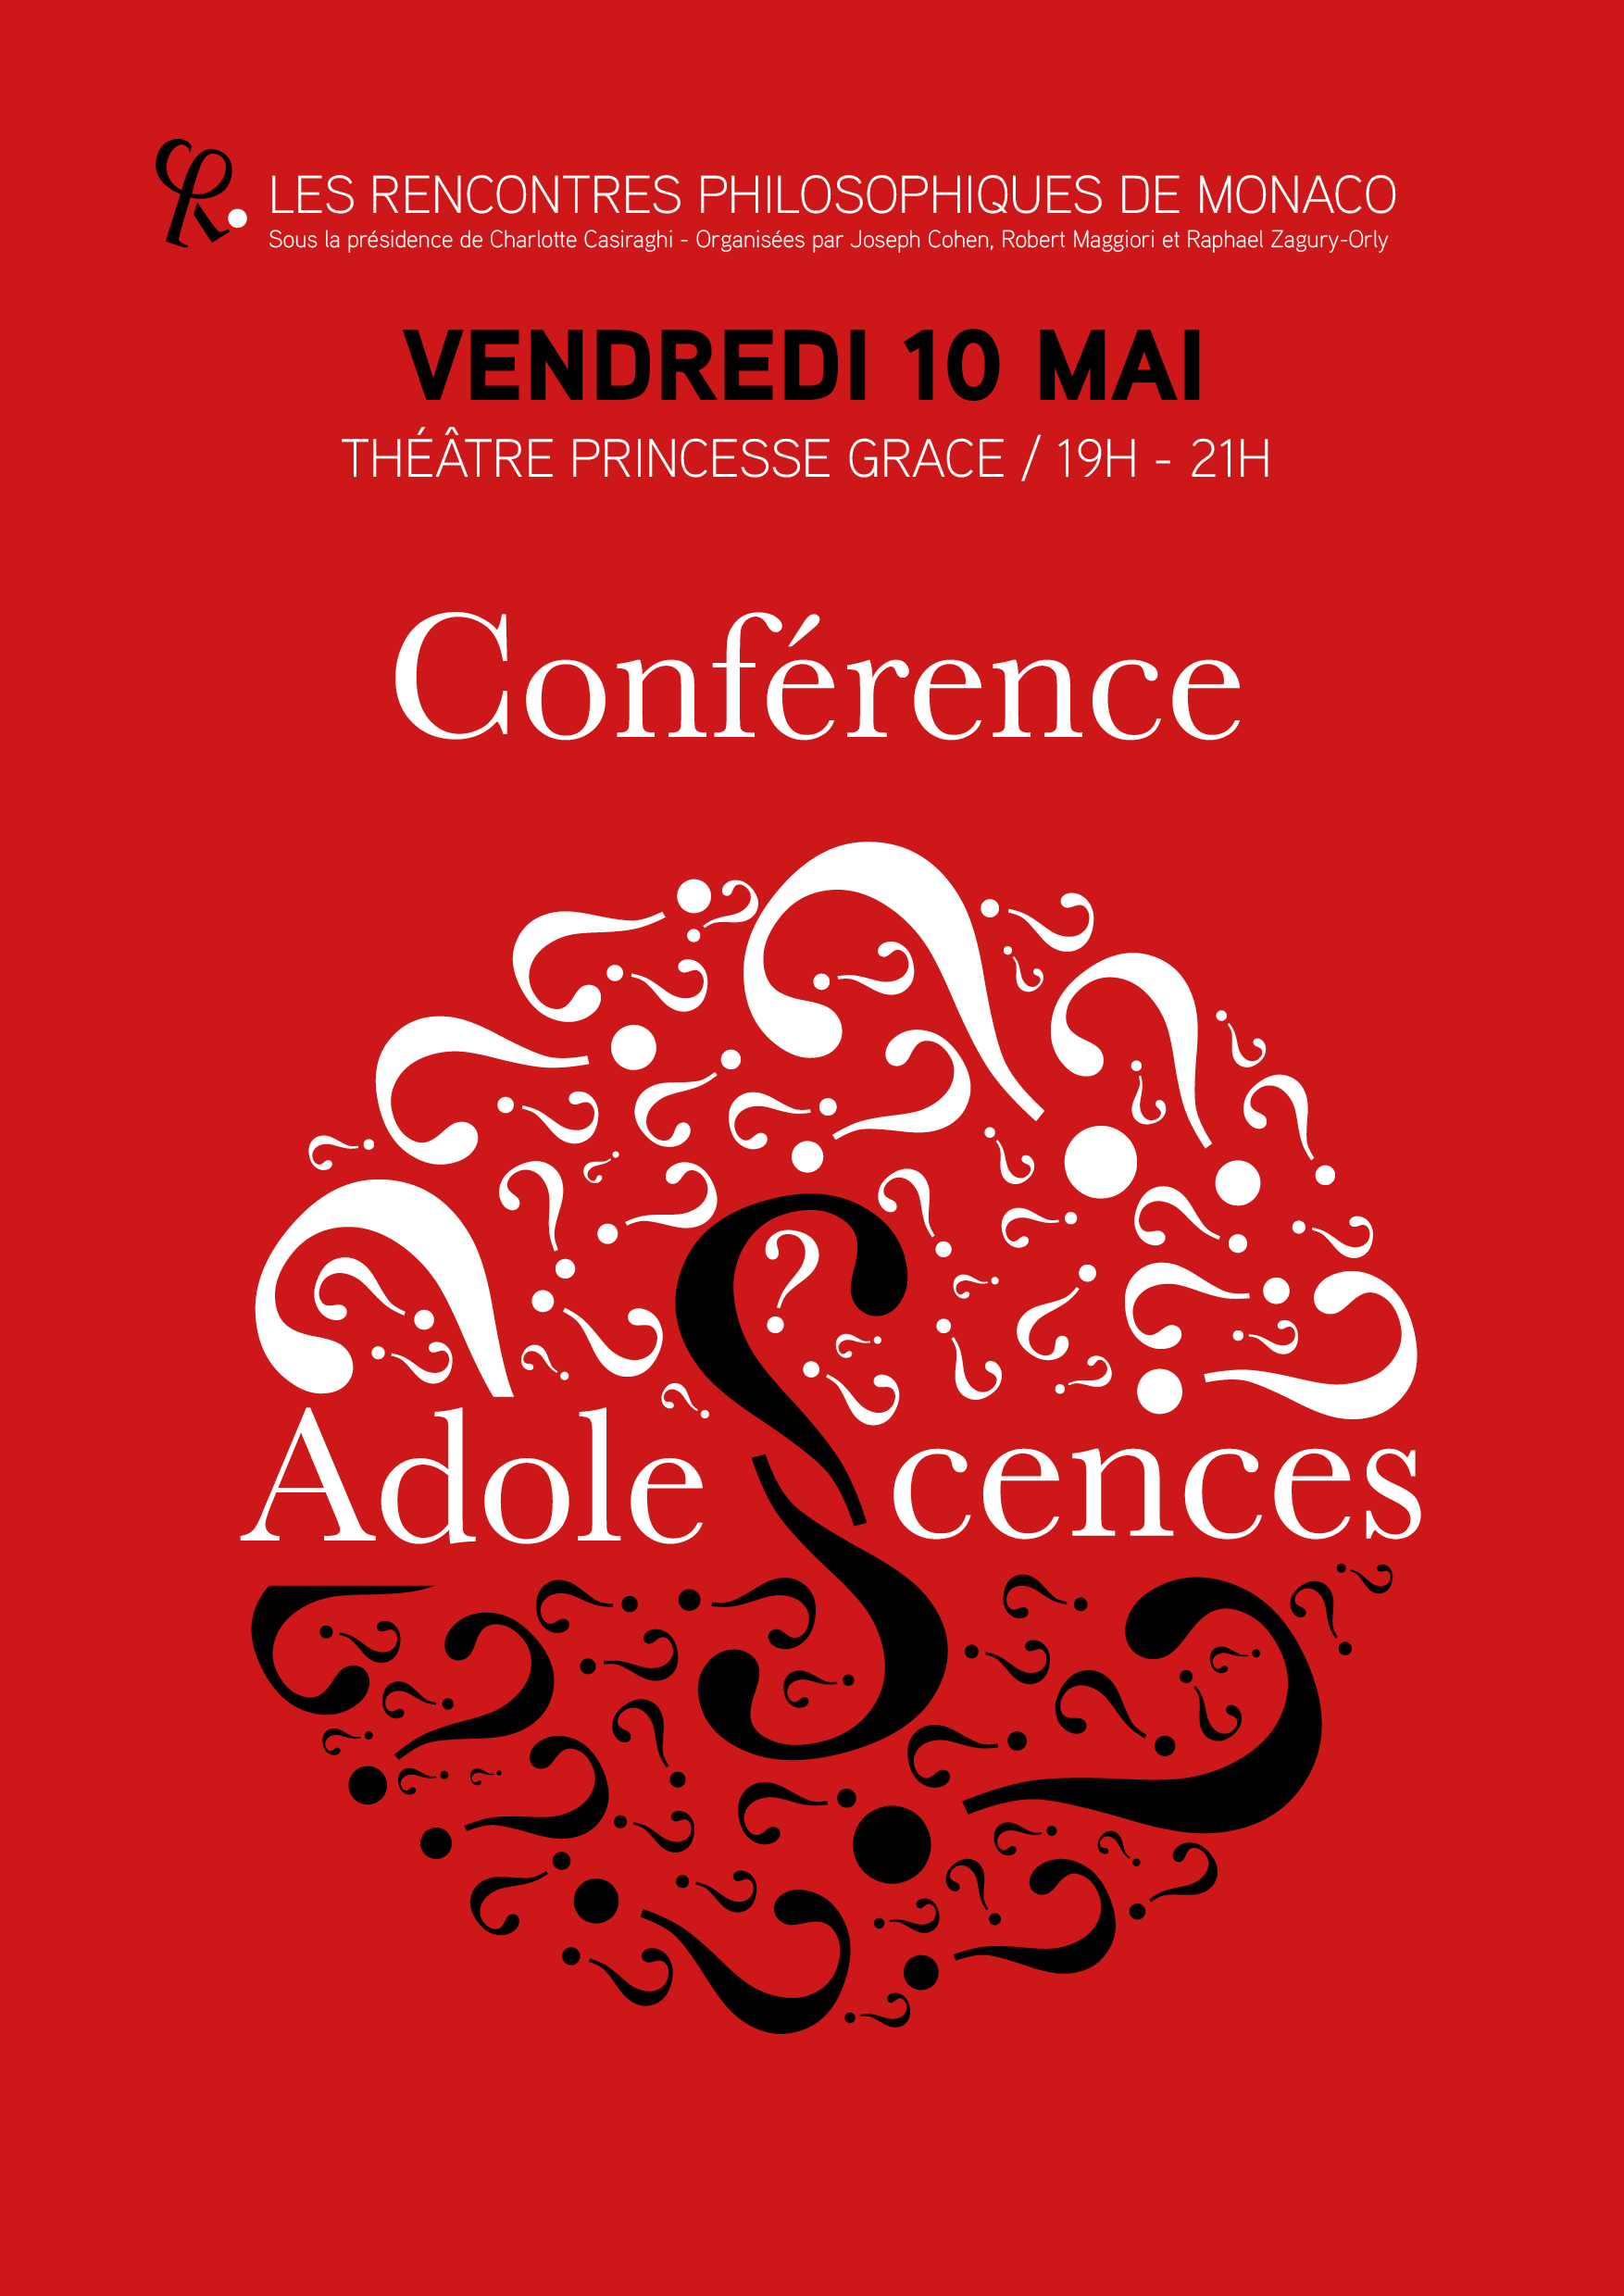 5426, 5426, flyer conference, flyer-conference.jpg, 1114068, https://philomonaco.com/wp-content/uploads/2019/04/flyer-conference.jpg, https://philomonaco.com/atelier/exposition-lhumain/flyer-conference/, , 2, , , flyer-conference, inherit, 5423, 2019-04-01 14:14:14, 2019-04-01 14:14:14, 0, image/jpeg, image, jpeg, https://philomonaco.com/wp-includes/images/media/default.png, 1754, 2480, Array